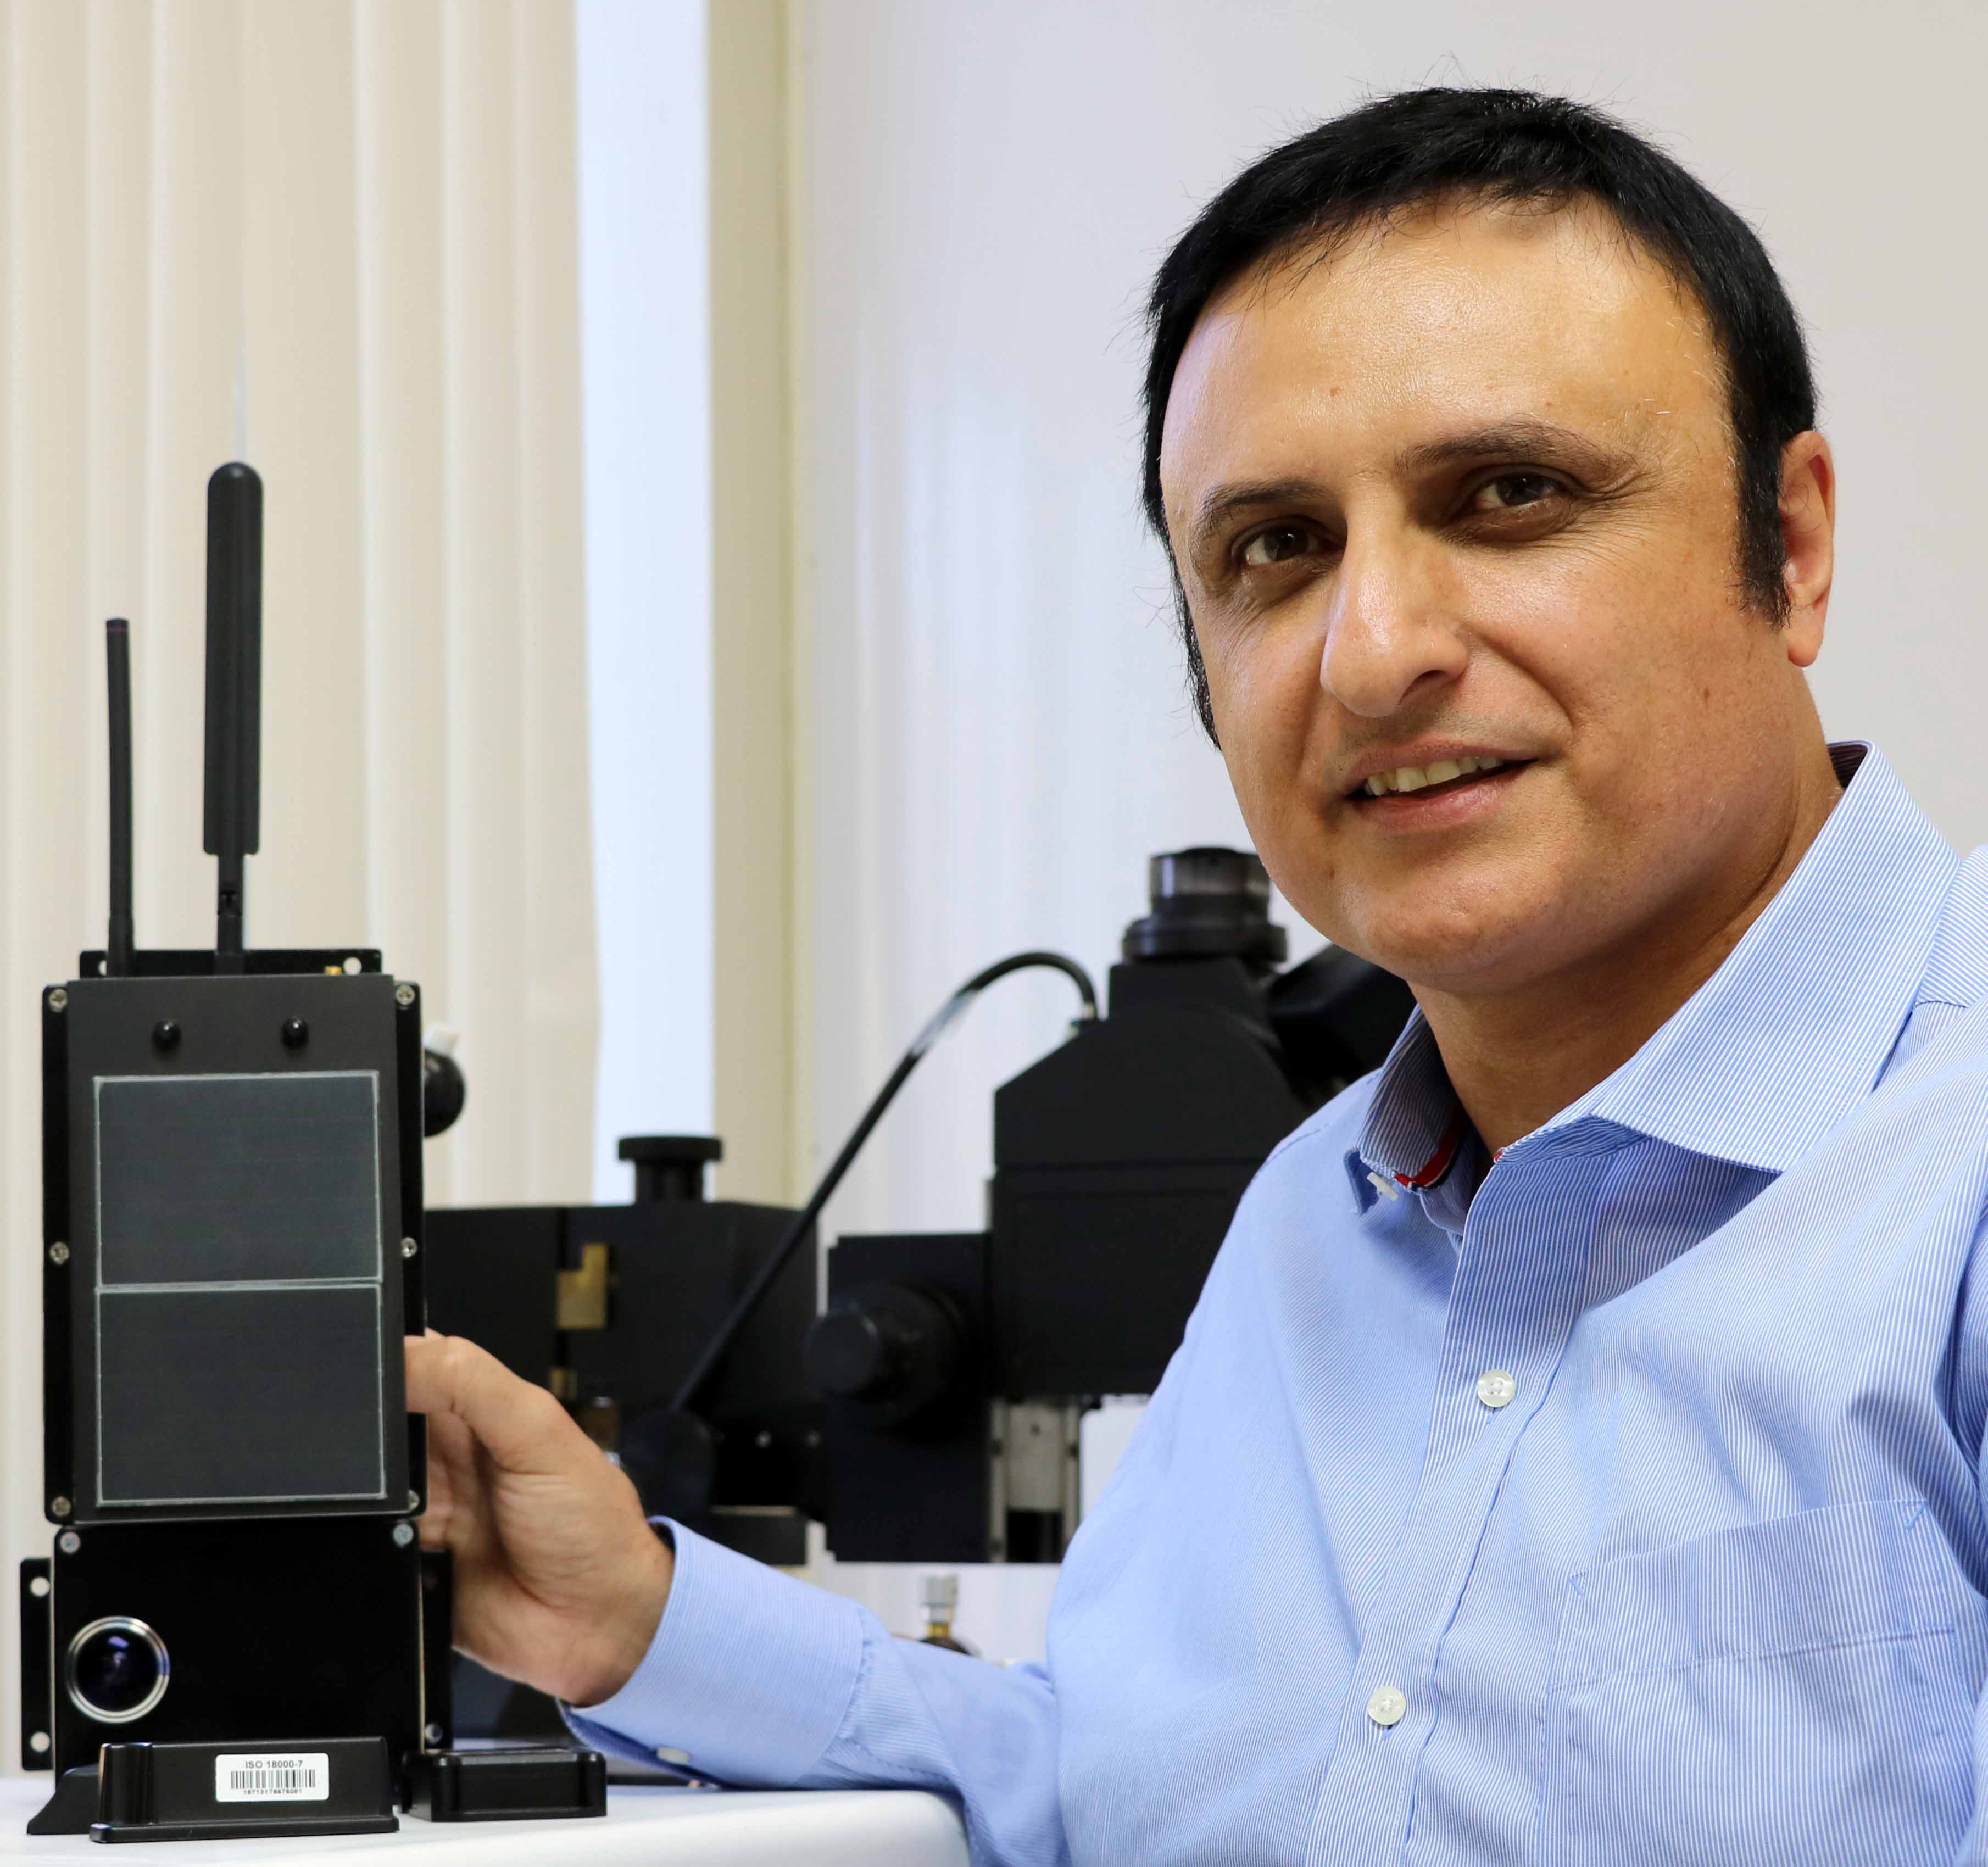 Navid Yazdi holds up Evigia device